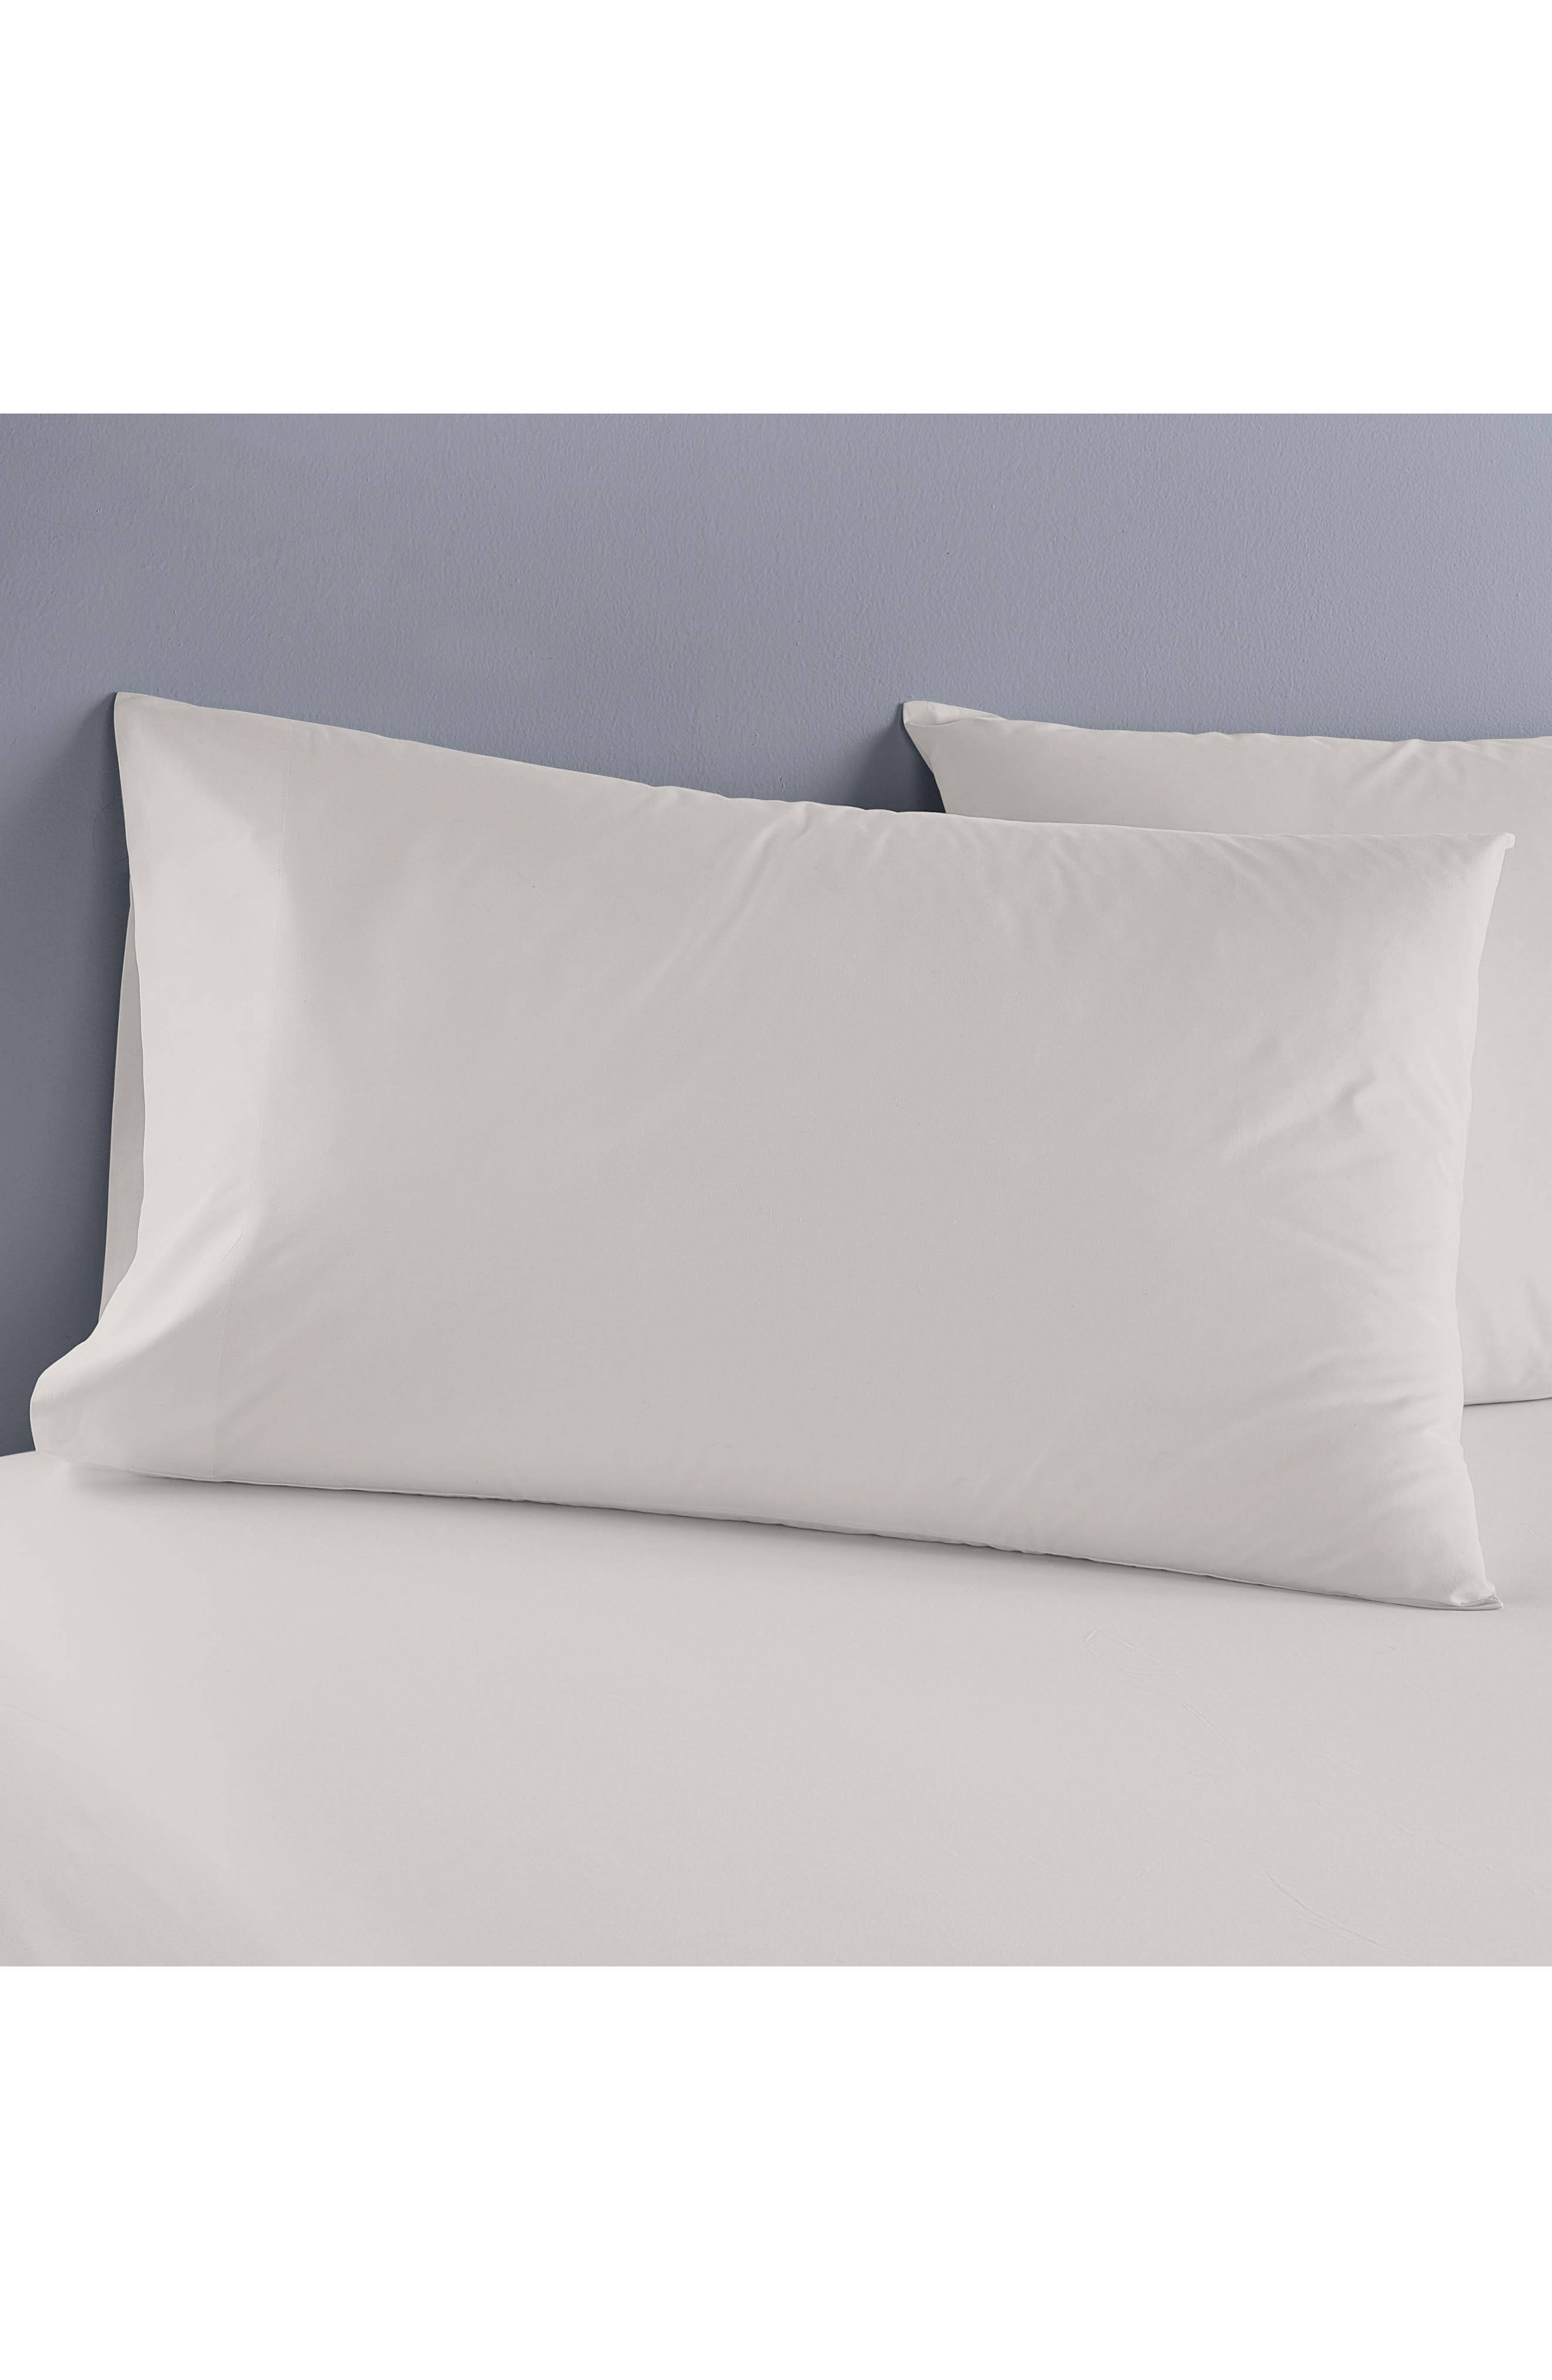 DONNA KARAN NEW YORK, Ultrafine 600 Thread Count European Sheet Set, Alternate thumbnail 3, color, PLATINUM